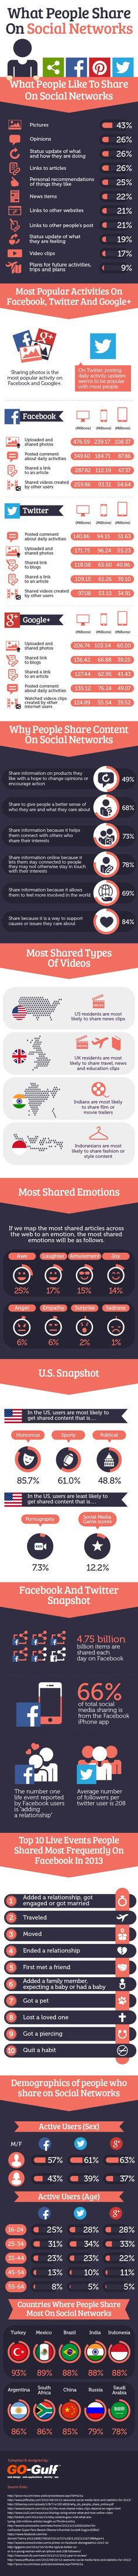 What people share on #SocialNetwork #Infographic #Socialmedia